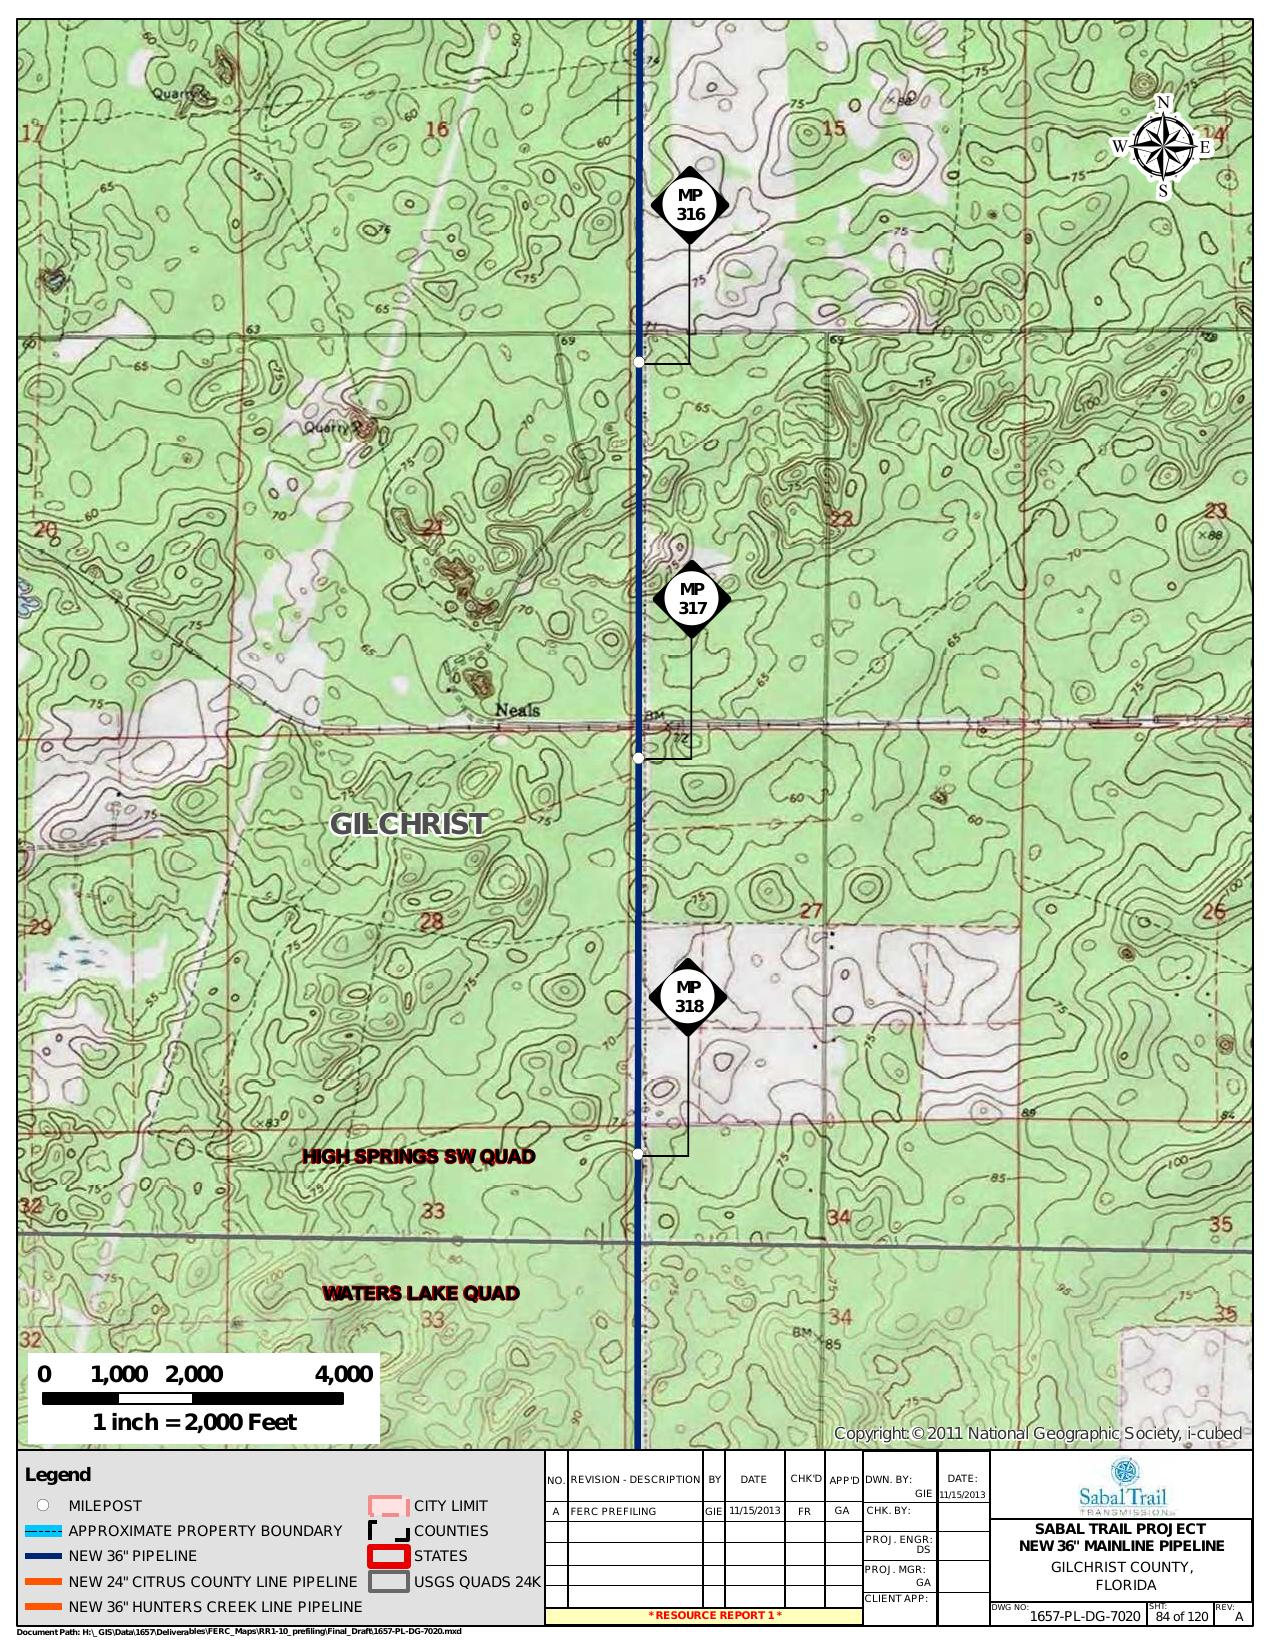 Neals, Gilchrist County, Florida, in General Project Description, by SpectraBusters, for FERC Docket No. PF14-1-000, 15 November 2013, converted by SpectraBusters